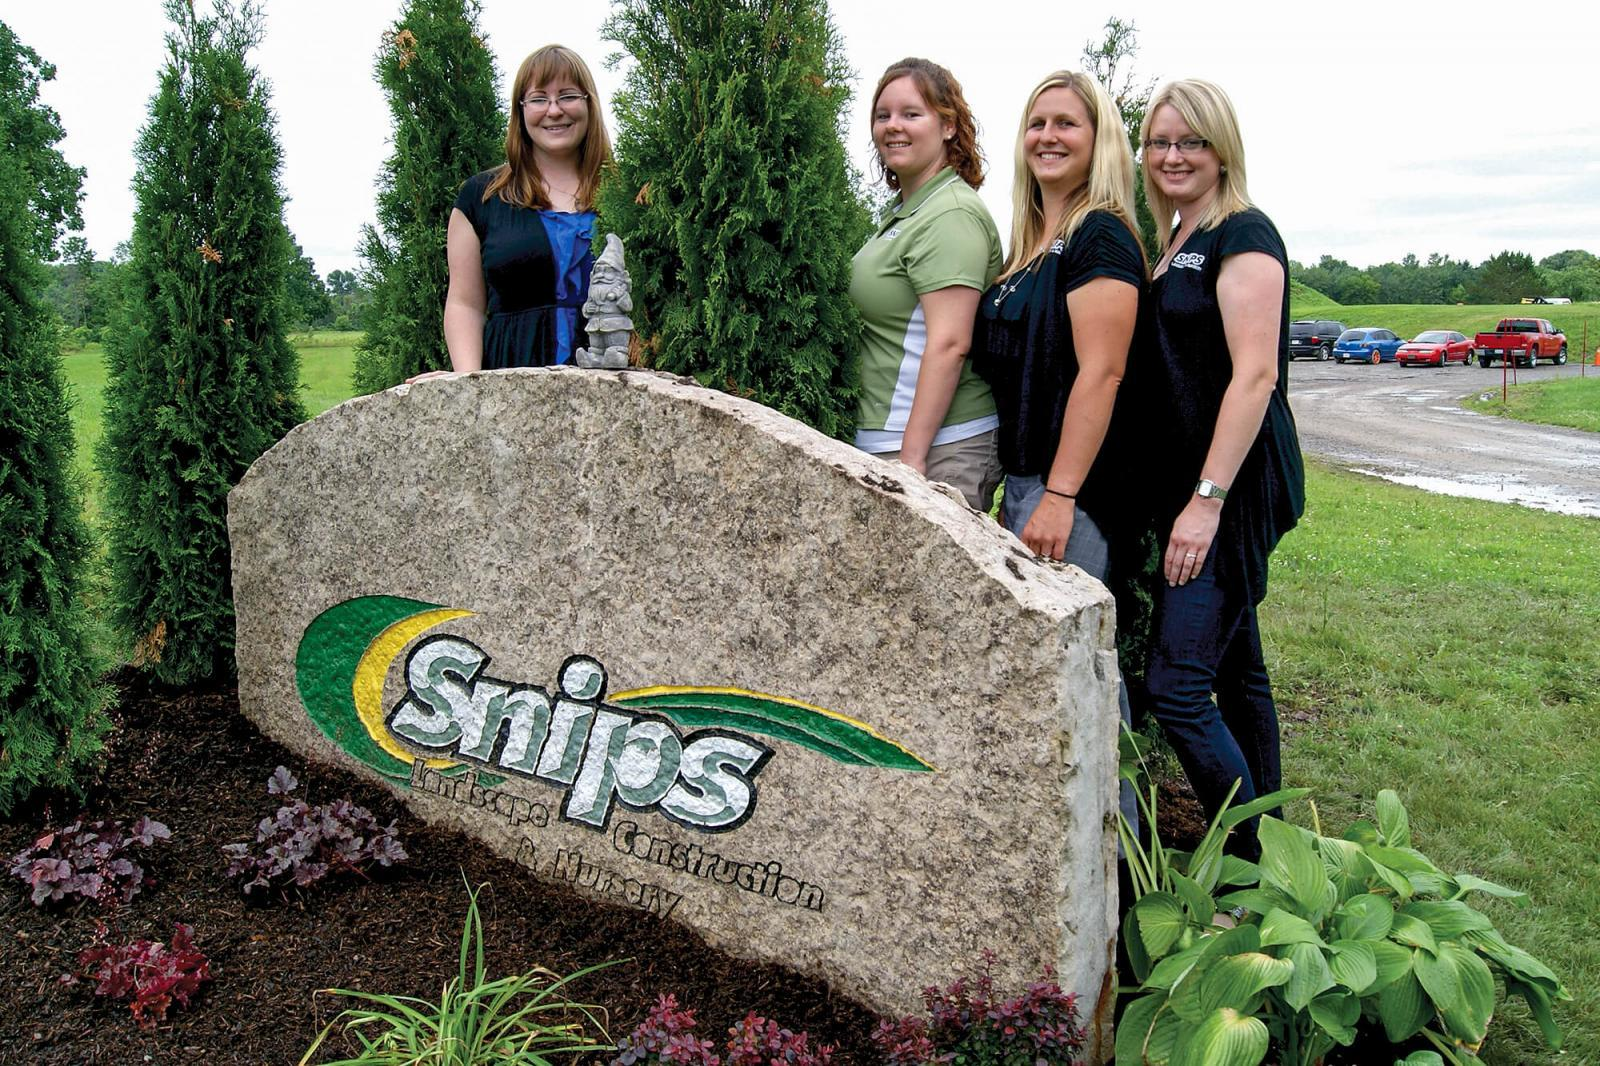 The ladies of Snips Landscape and Nursery, Alena Dawson, Tasha Beck, Kristi Montovani and Laura DeGraff, pose with what they call the tombstone, which greets visitors to Snips Landscape's 10-acre site just outside Welland.